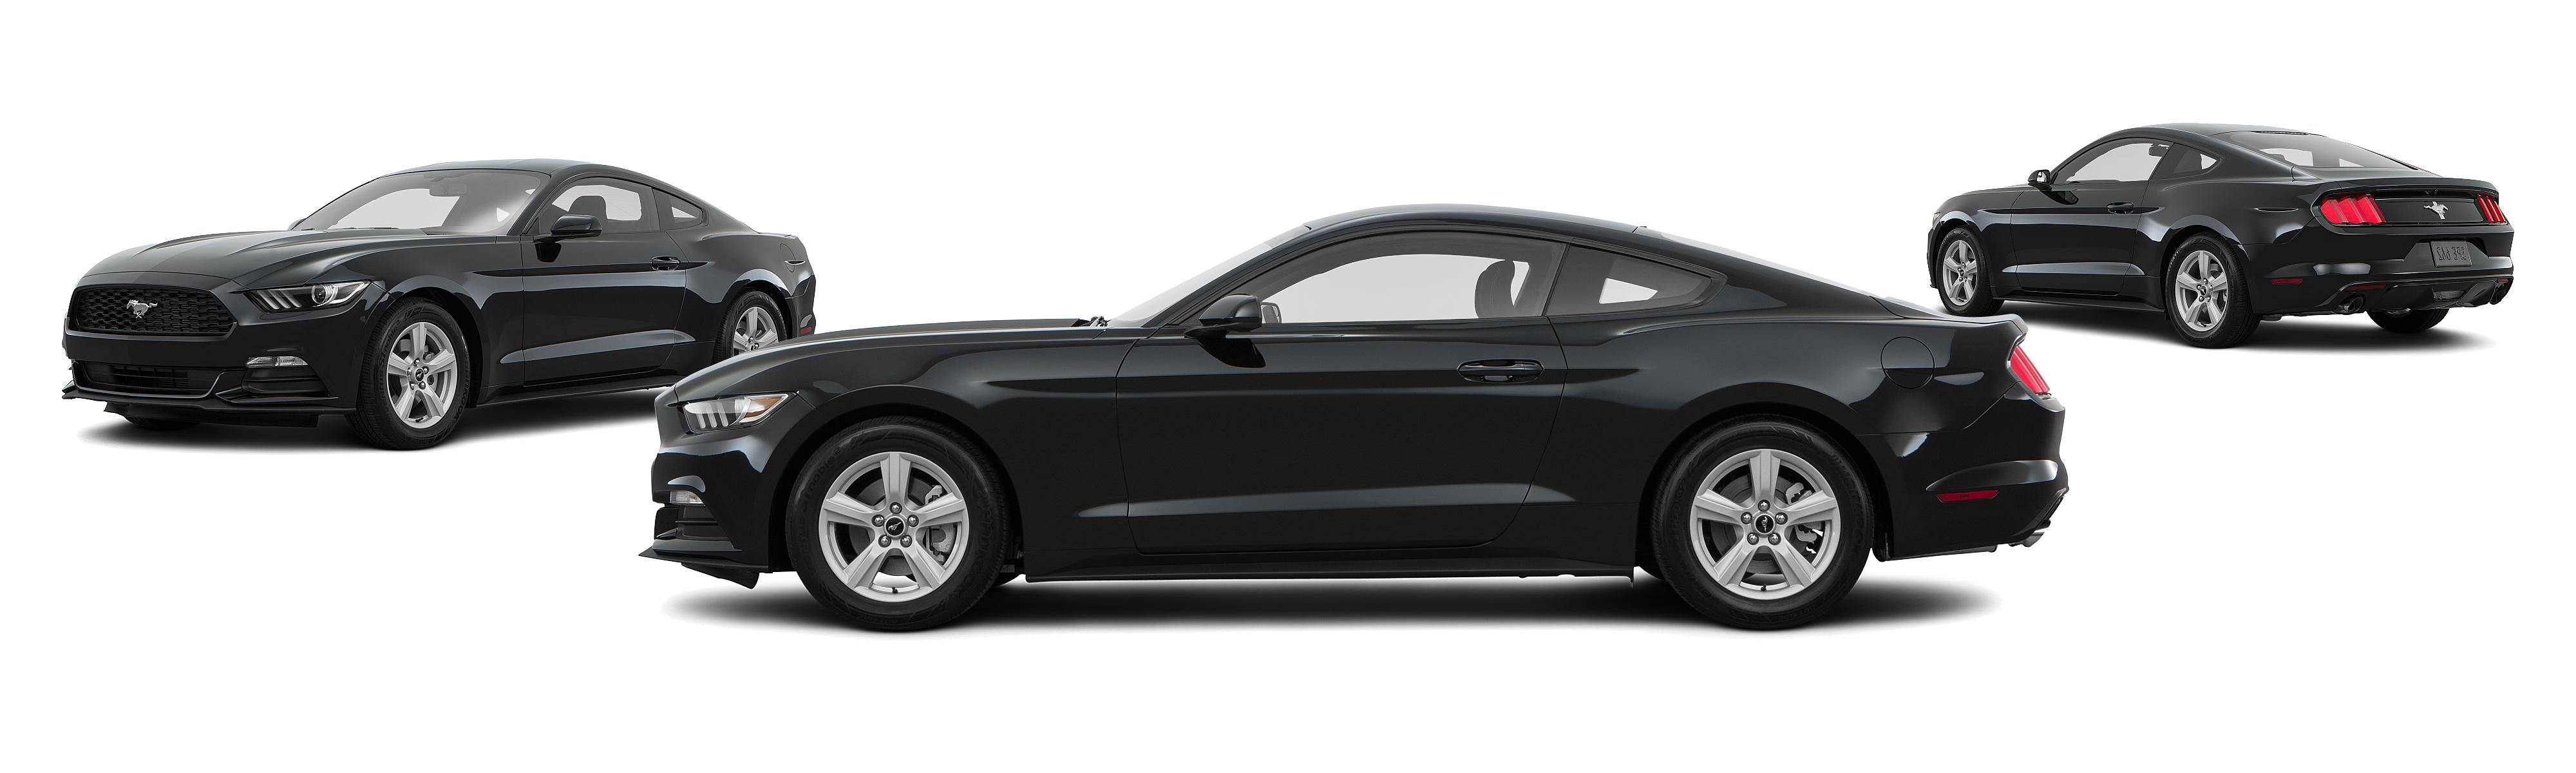 2017 ford mustang v6 2dr fastback research groovecar